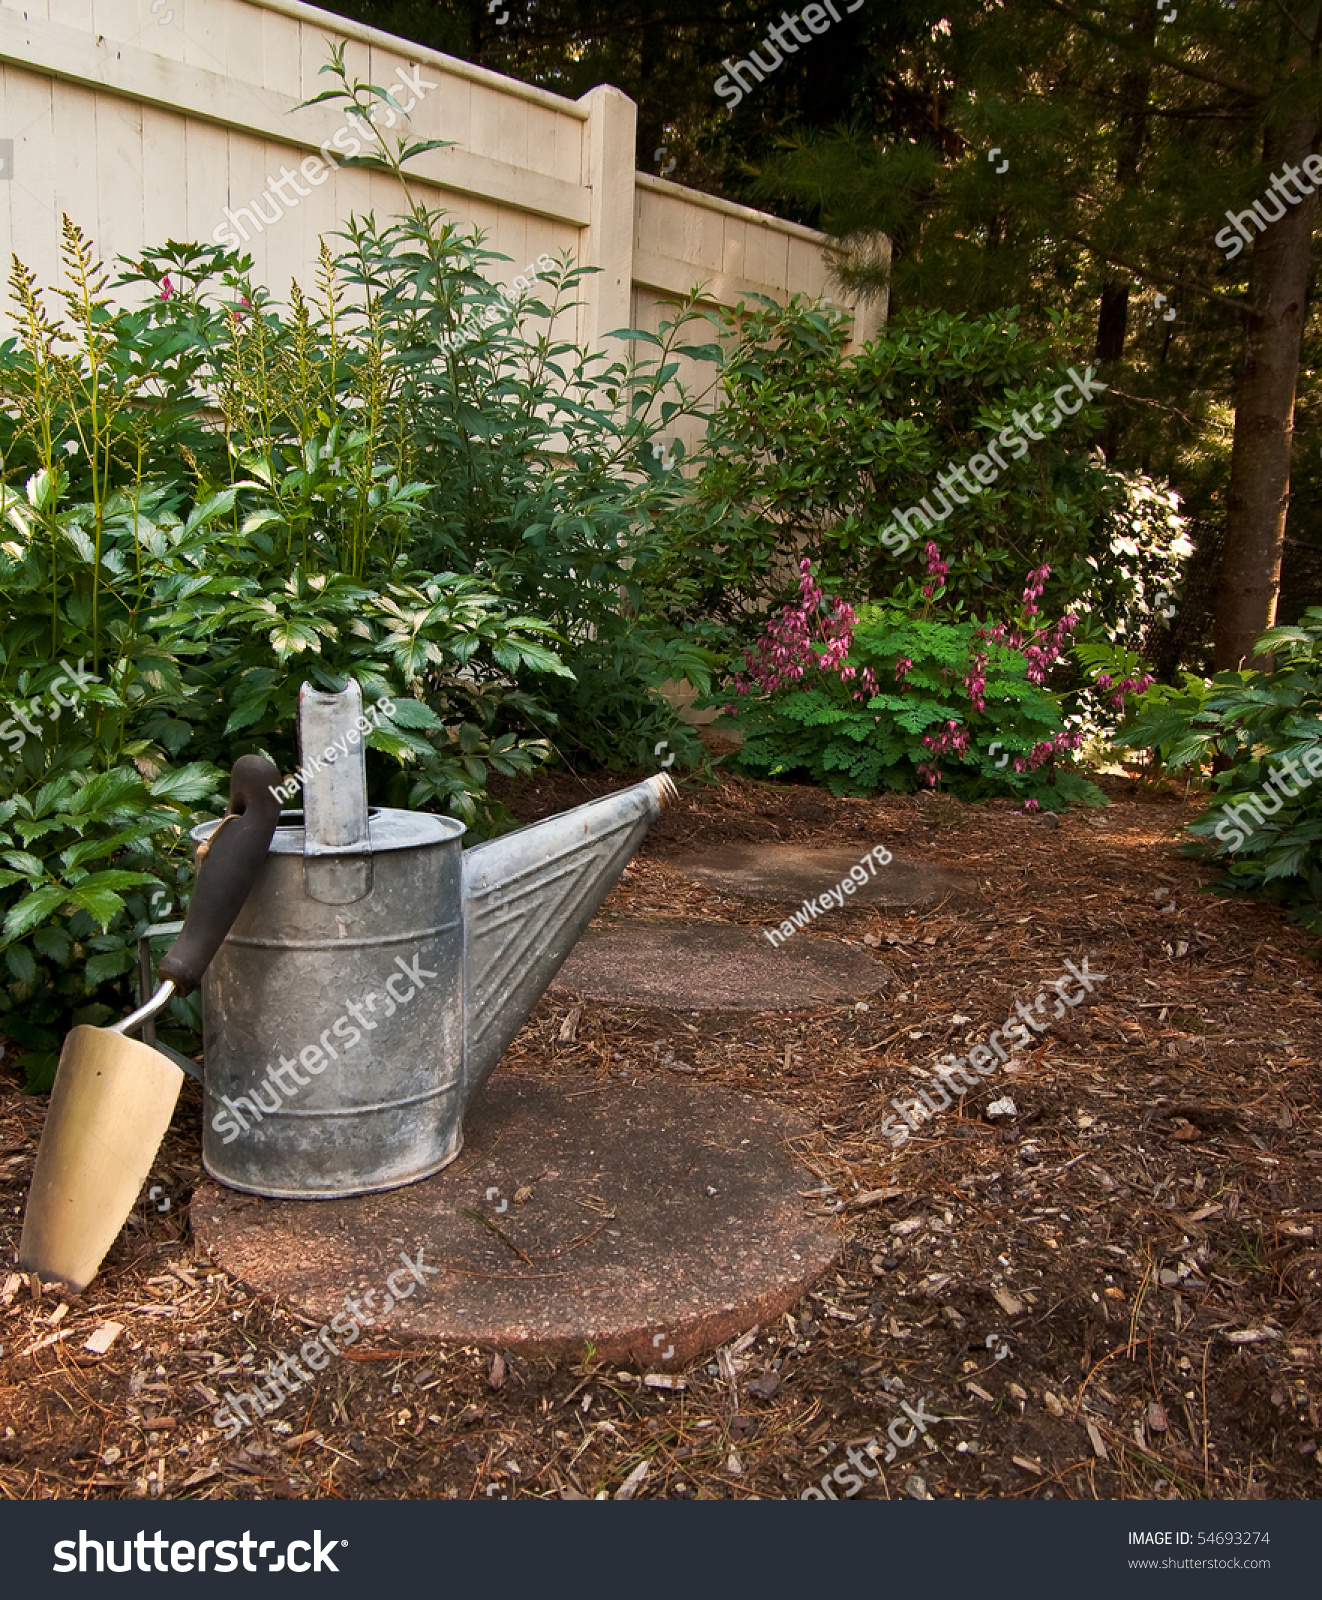 A trowel sits against an old watering can on a stone path that leads ...